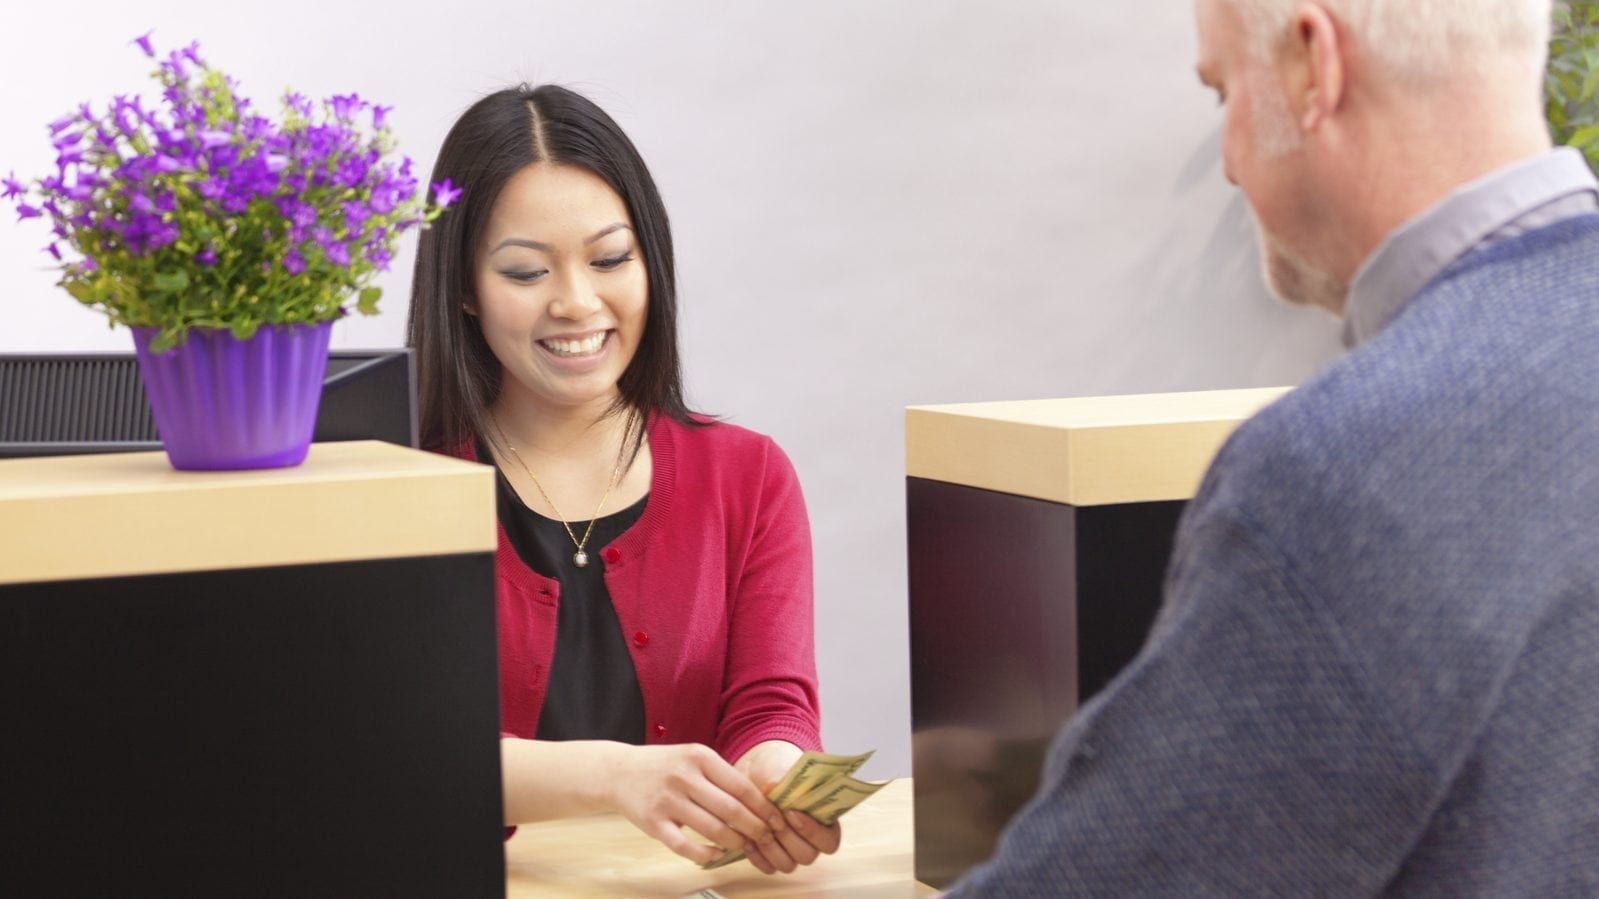 Bank Teller Stock Photo